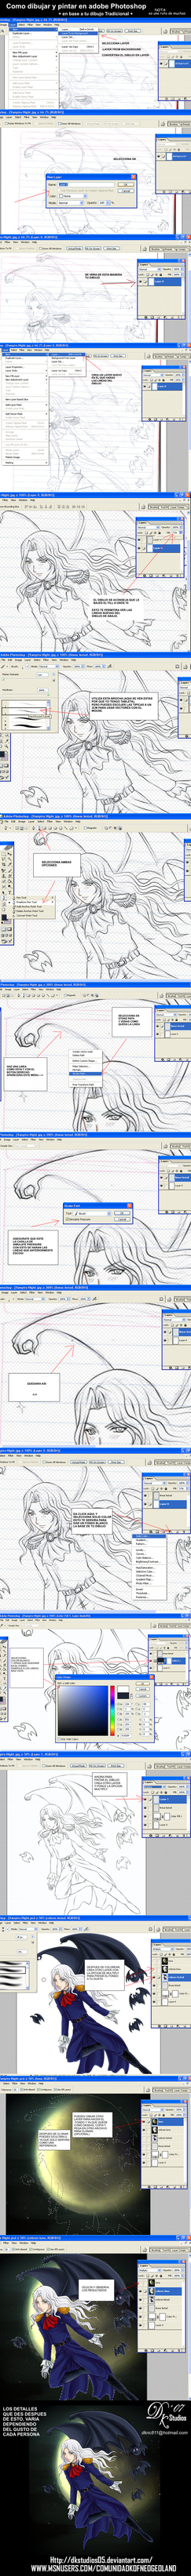 Tutorial lineas y color en PS by noticias